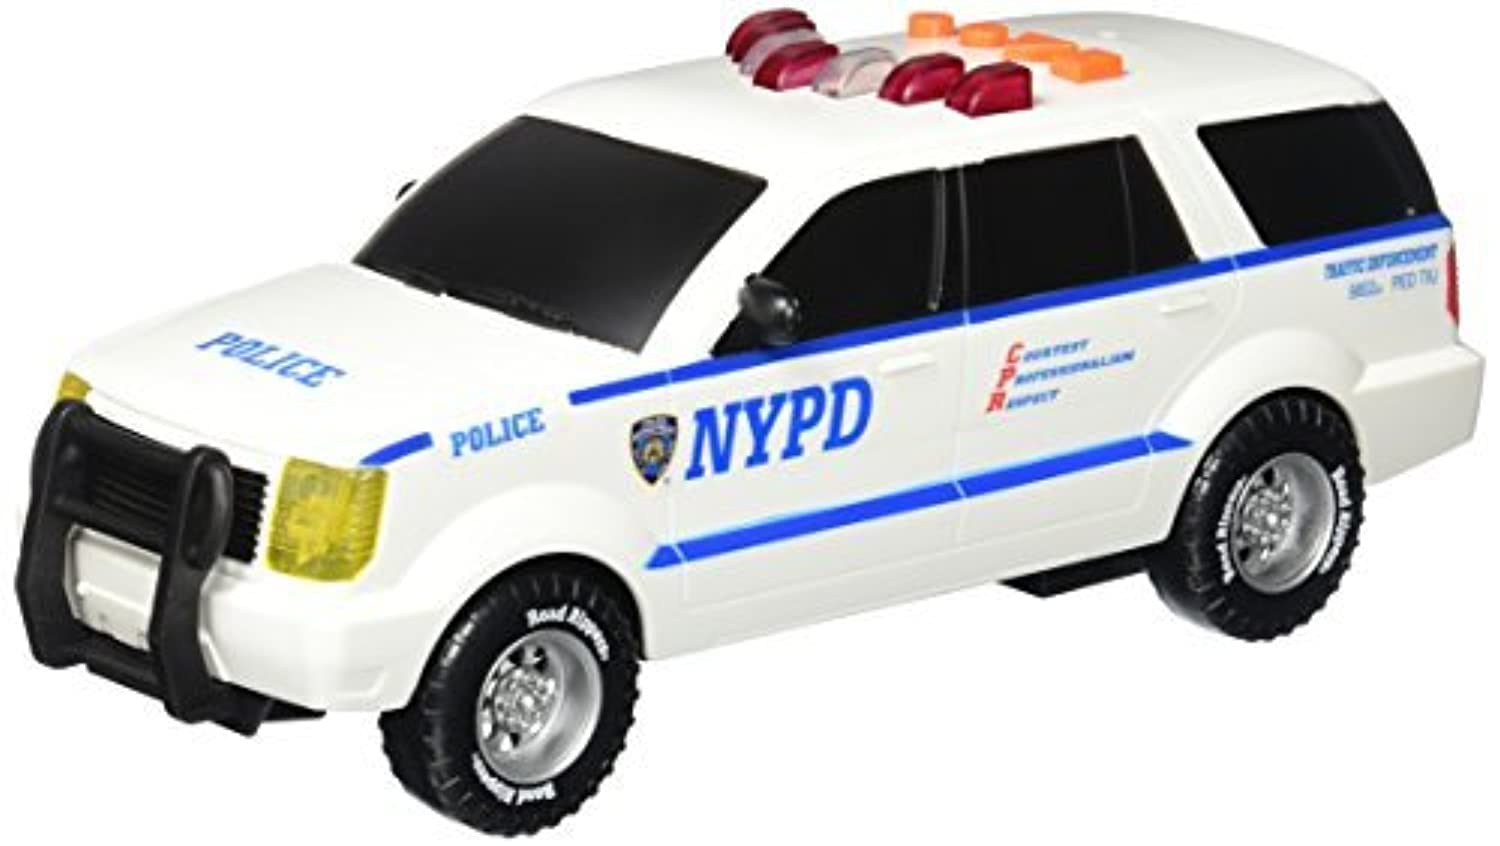 Daron NYPD Motorized SUV with Light and Sound [並行輸入品]